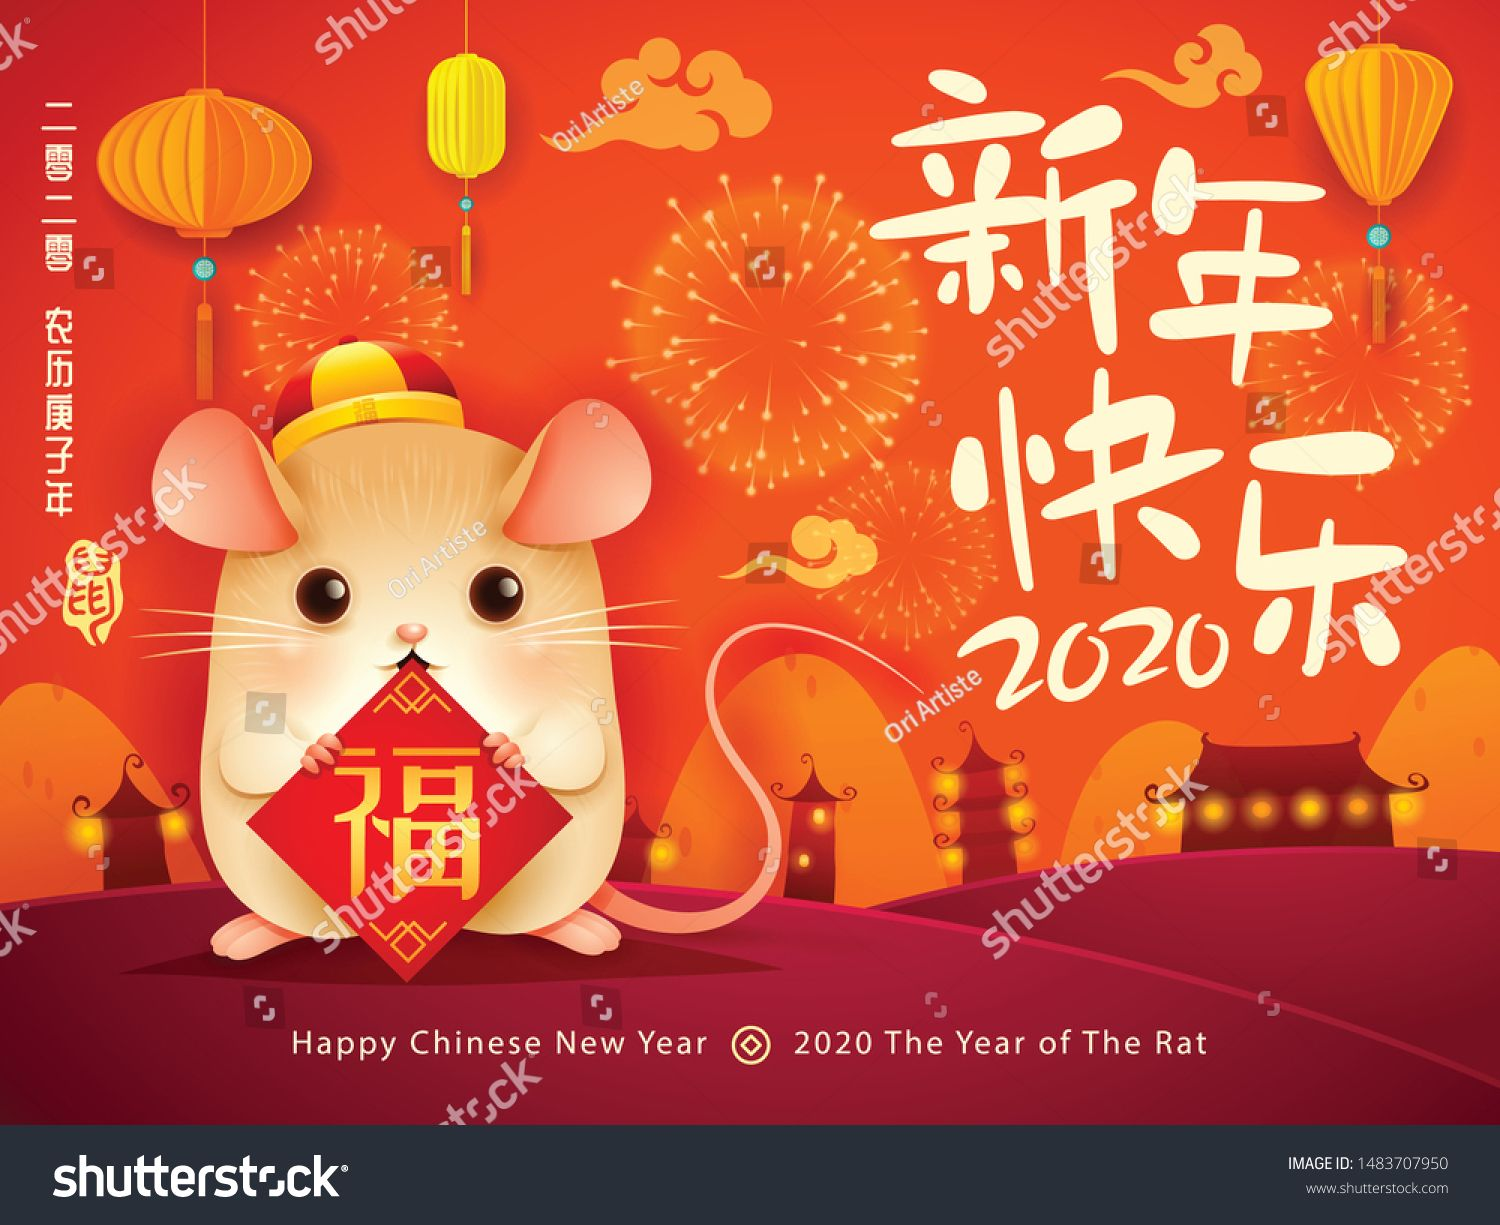 Happy Chinese New Year 2020 The Year Of The Rat Translation Title Happy New Year Sign Fortune In 2020 Year Of The Rat Chinese New Year Easy Canvas Painting